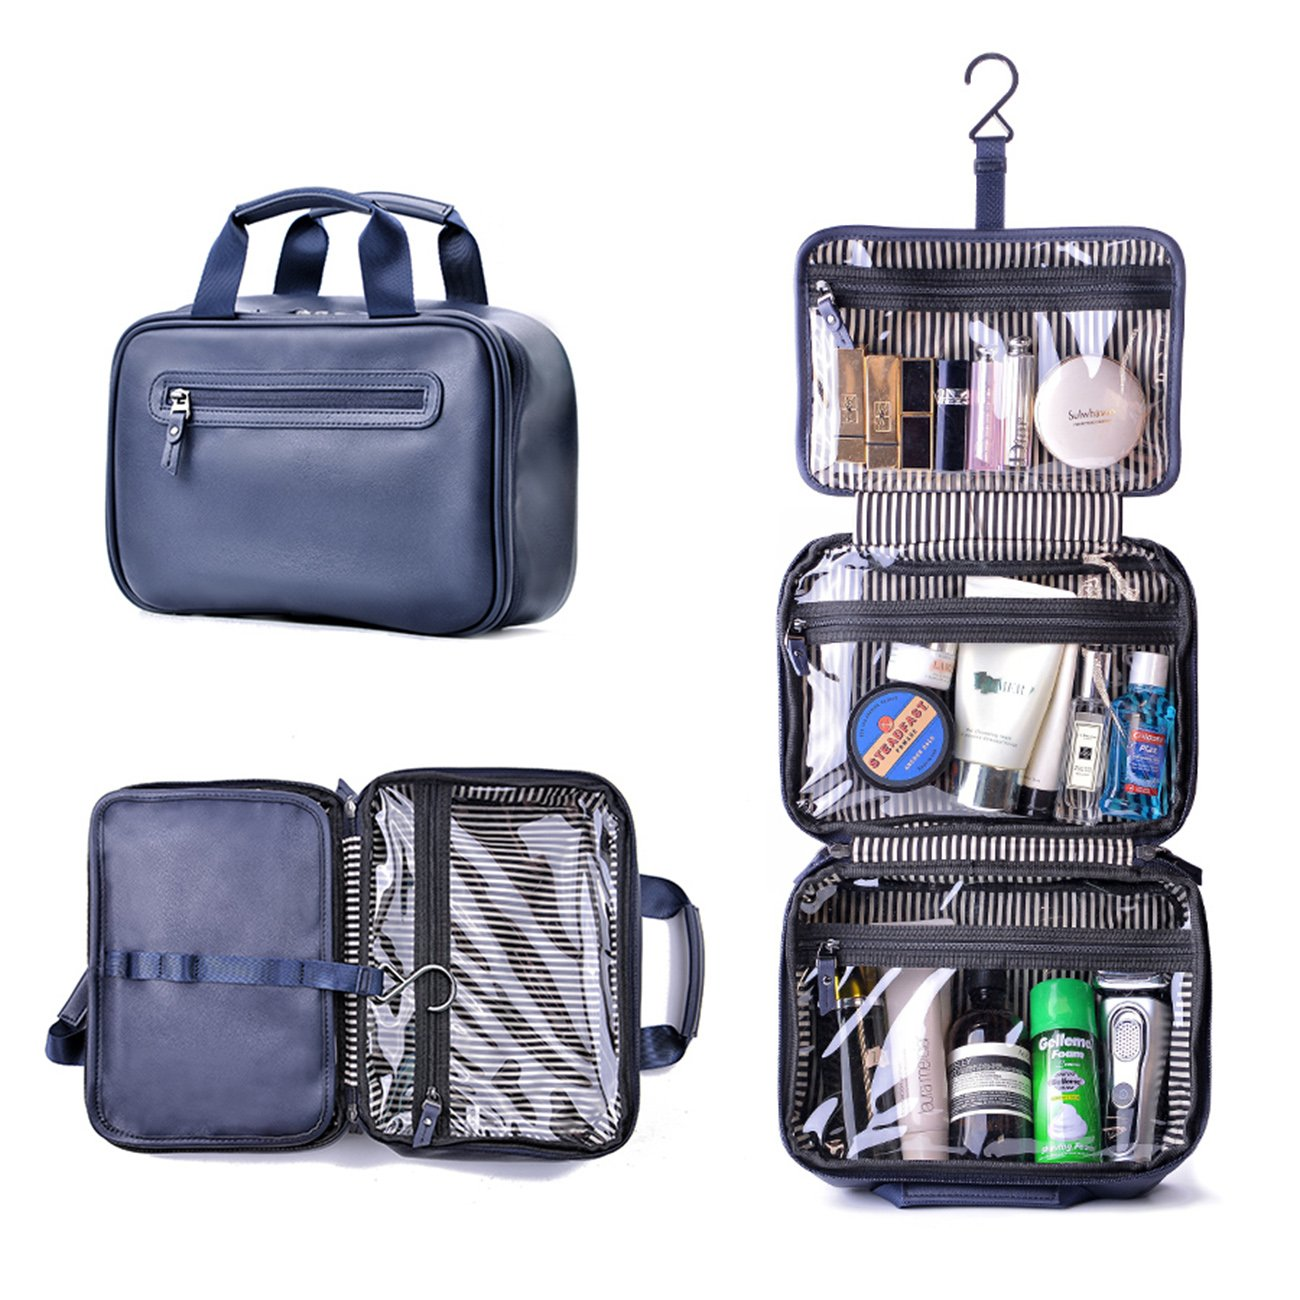 Beschan Extra Large PU Leather Hanging Travel Toiletry Bag Transparent Organizer Dopp Kit for Men for Woman (Blue) MLA000402